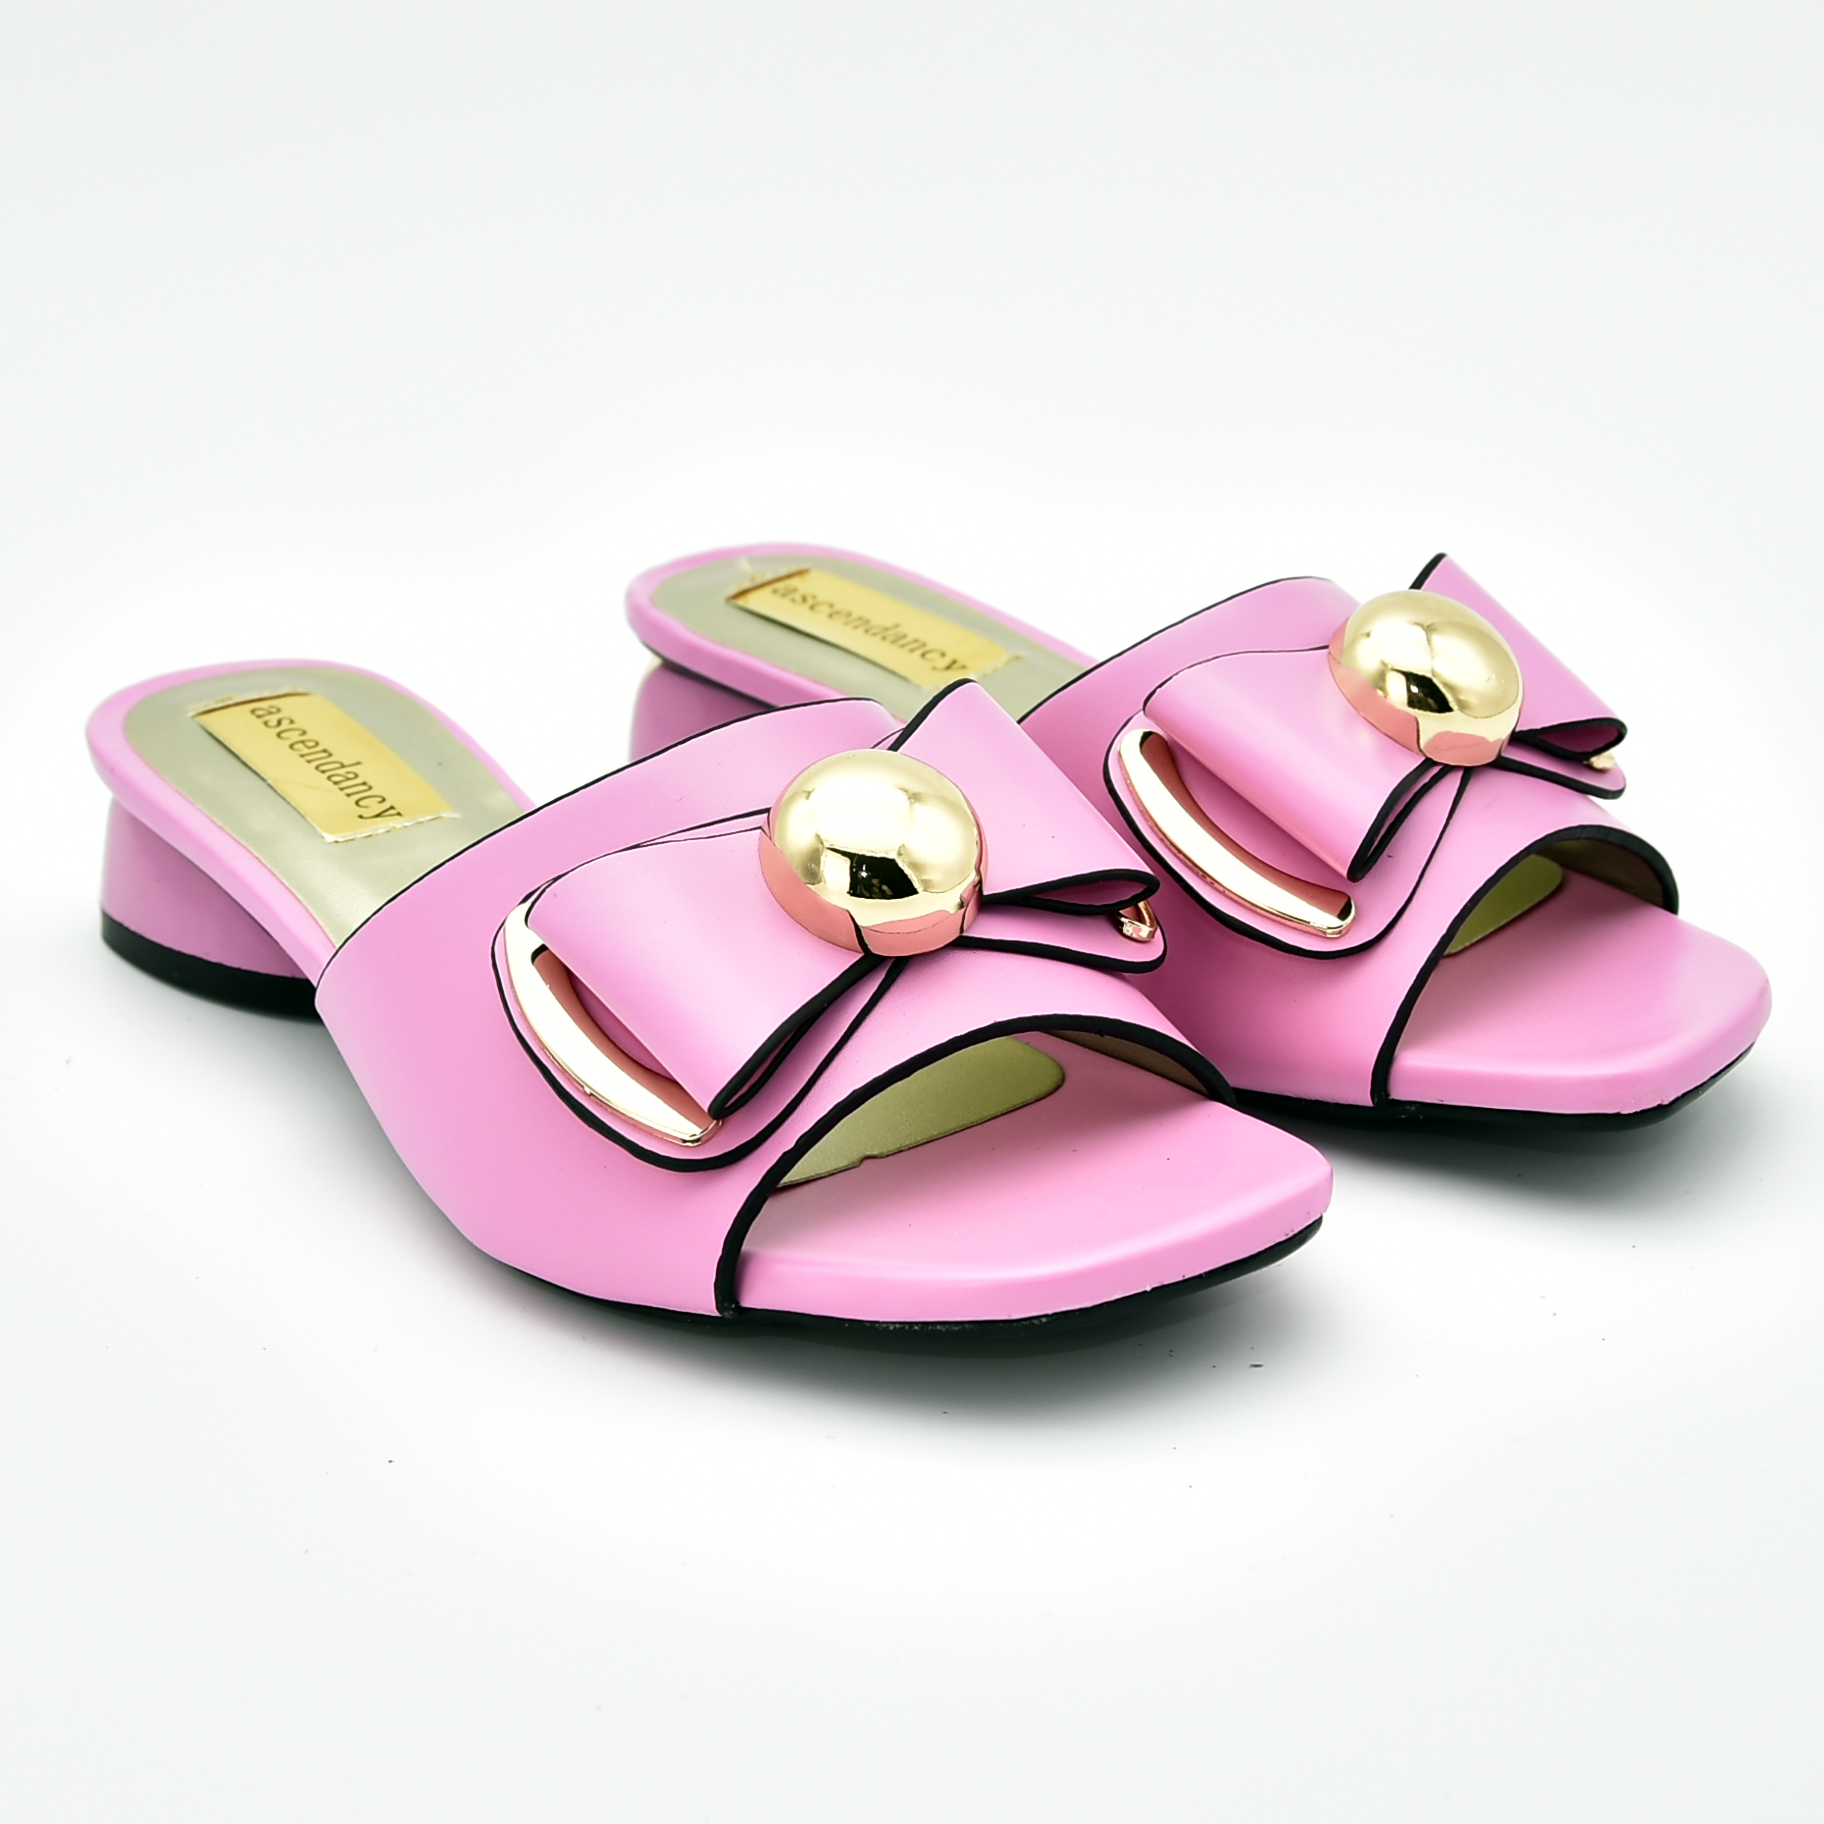 Rortydream pink sandals lady shoes low <strong>heel</strong> B3192-4